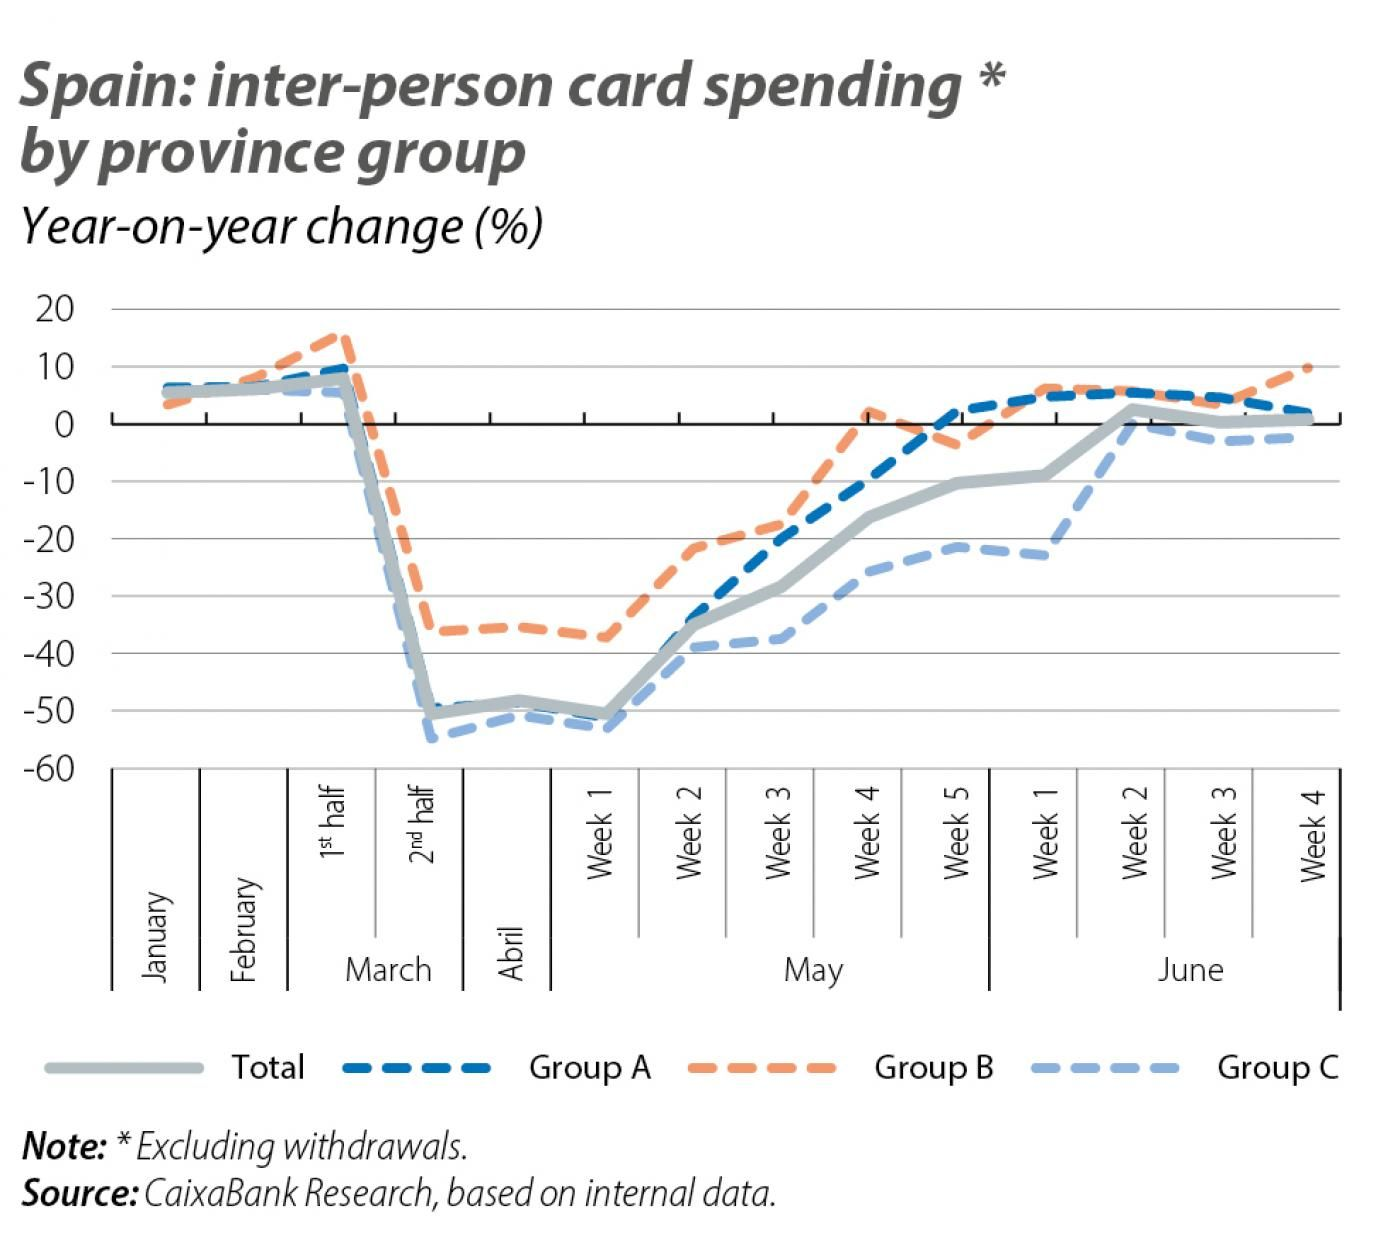 Spain: inter-person card spending * by province group